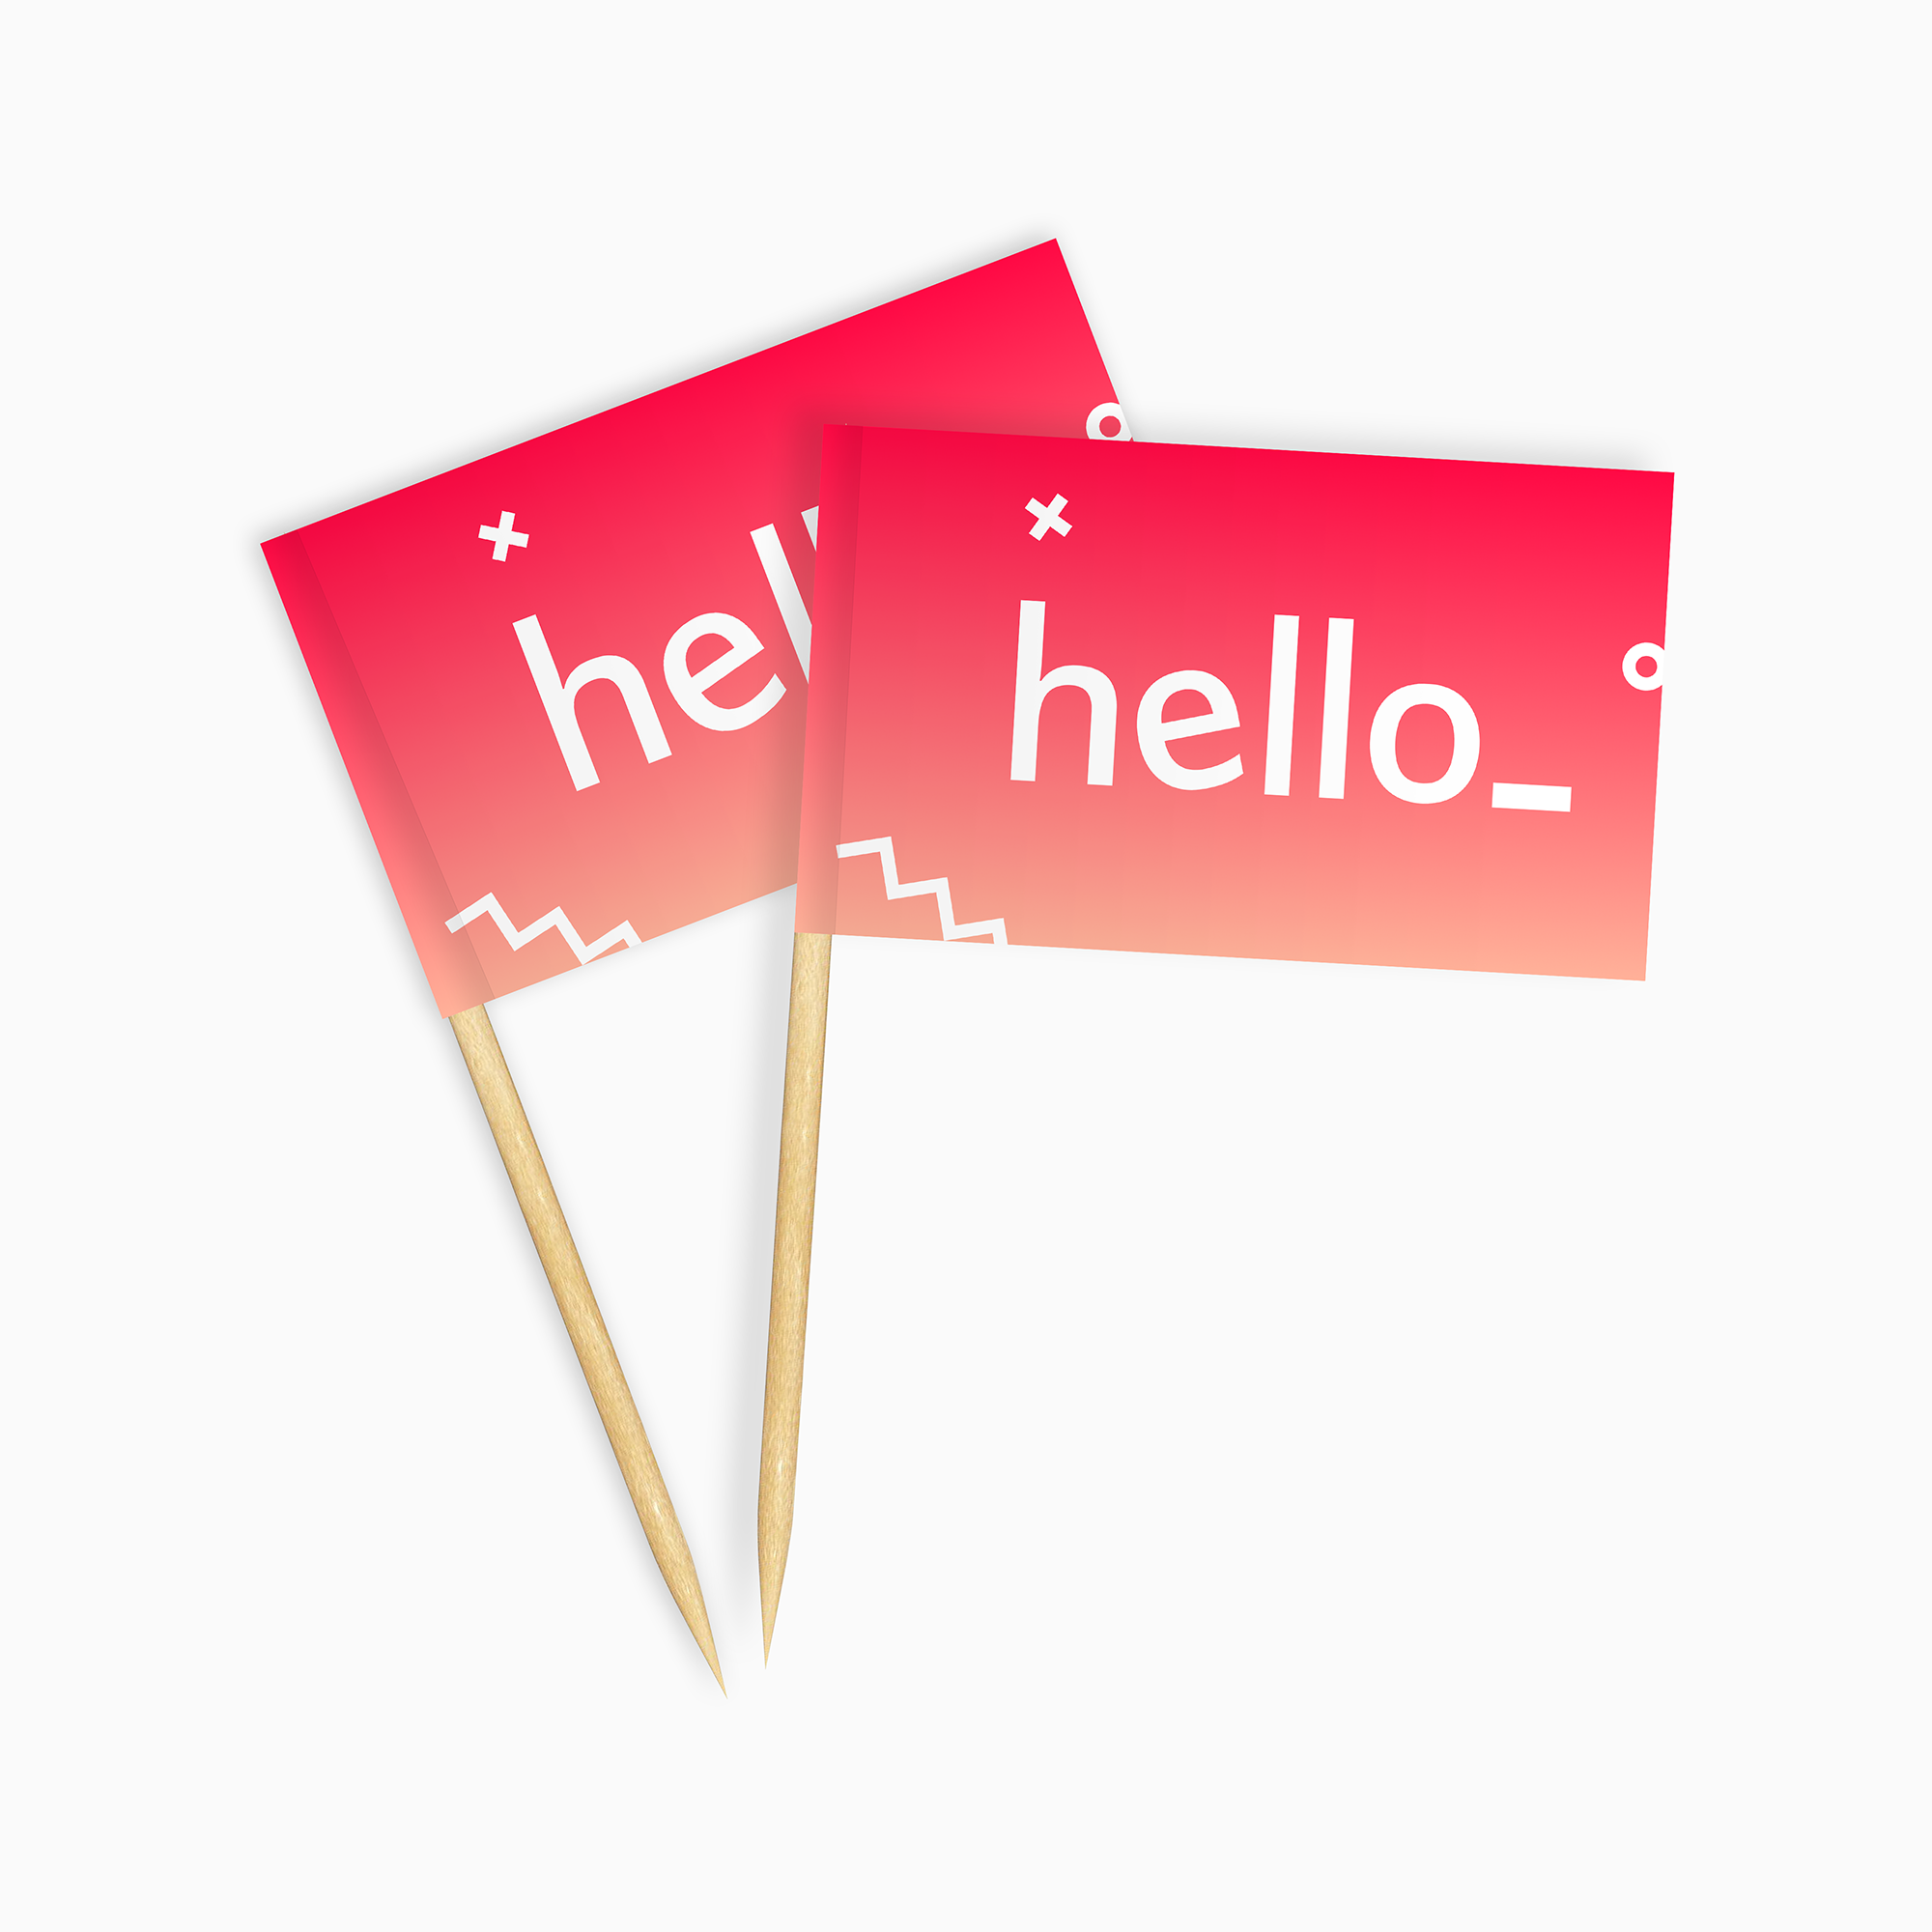 Cocktail toothpicks with a printed flag attached to the top, available with a custom logo or text at Helloprint.